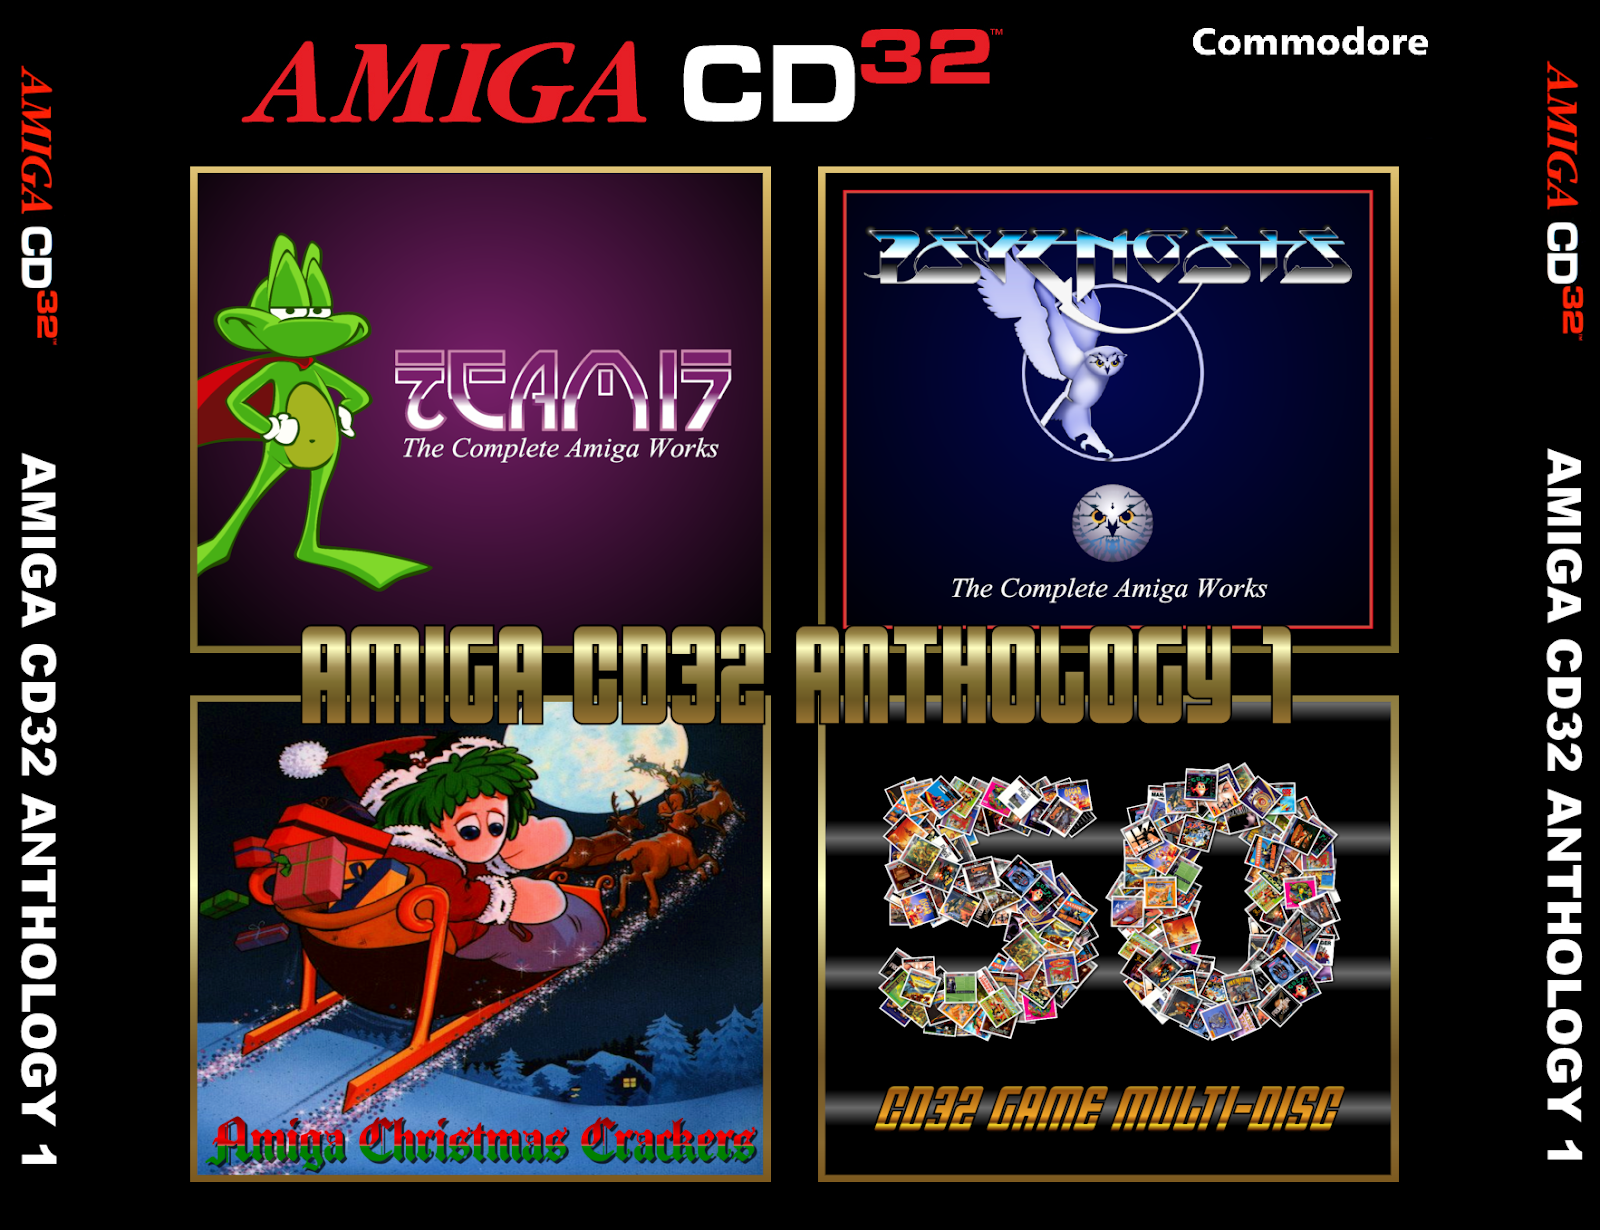 Indie Retro News: Amiga CD32 Anthology Set 1 - The first of Amiga